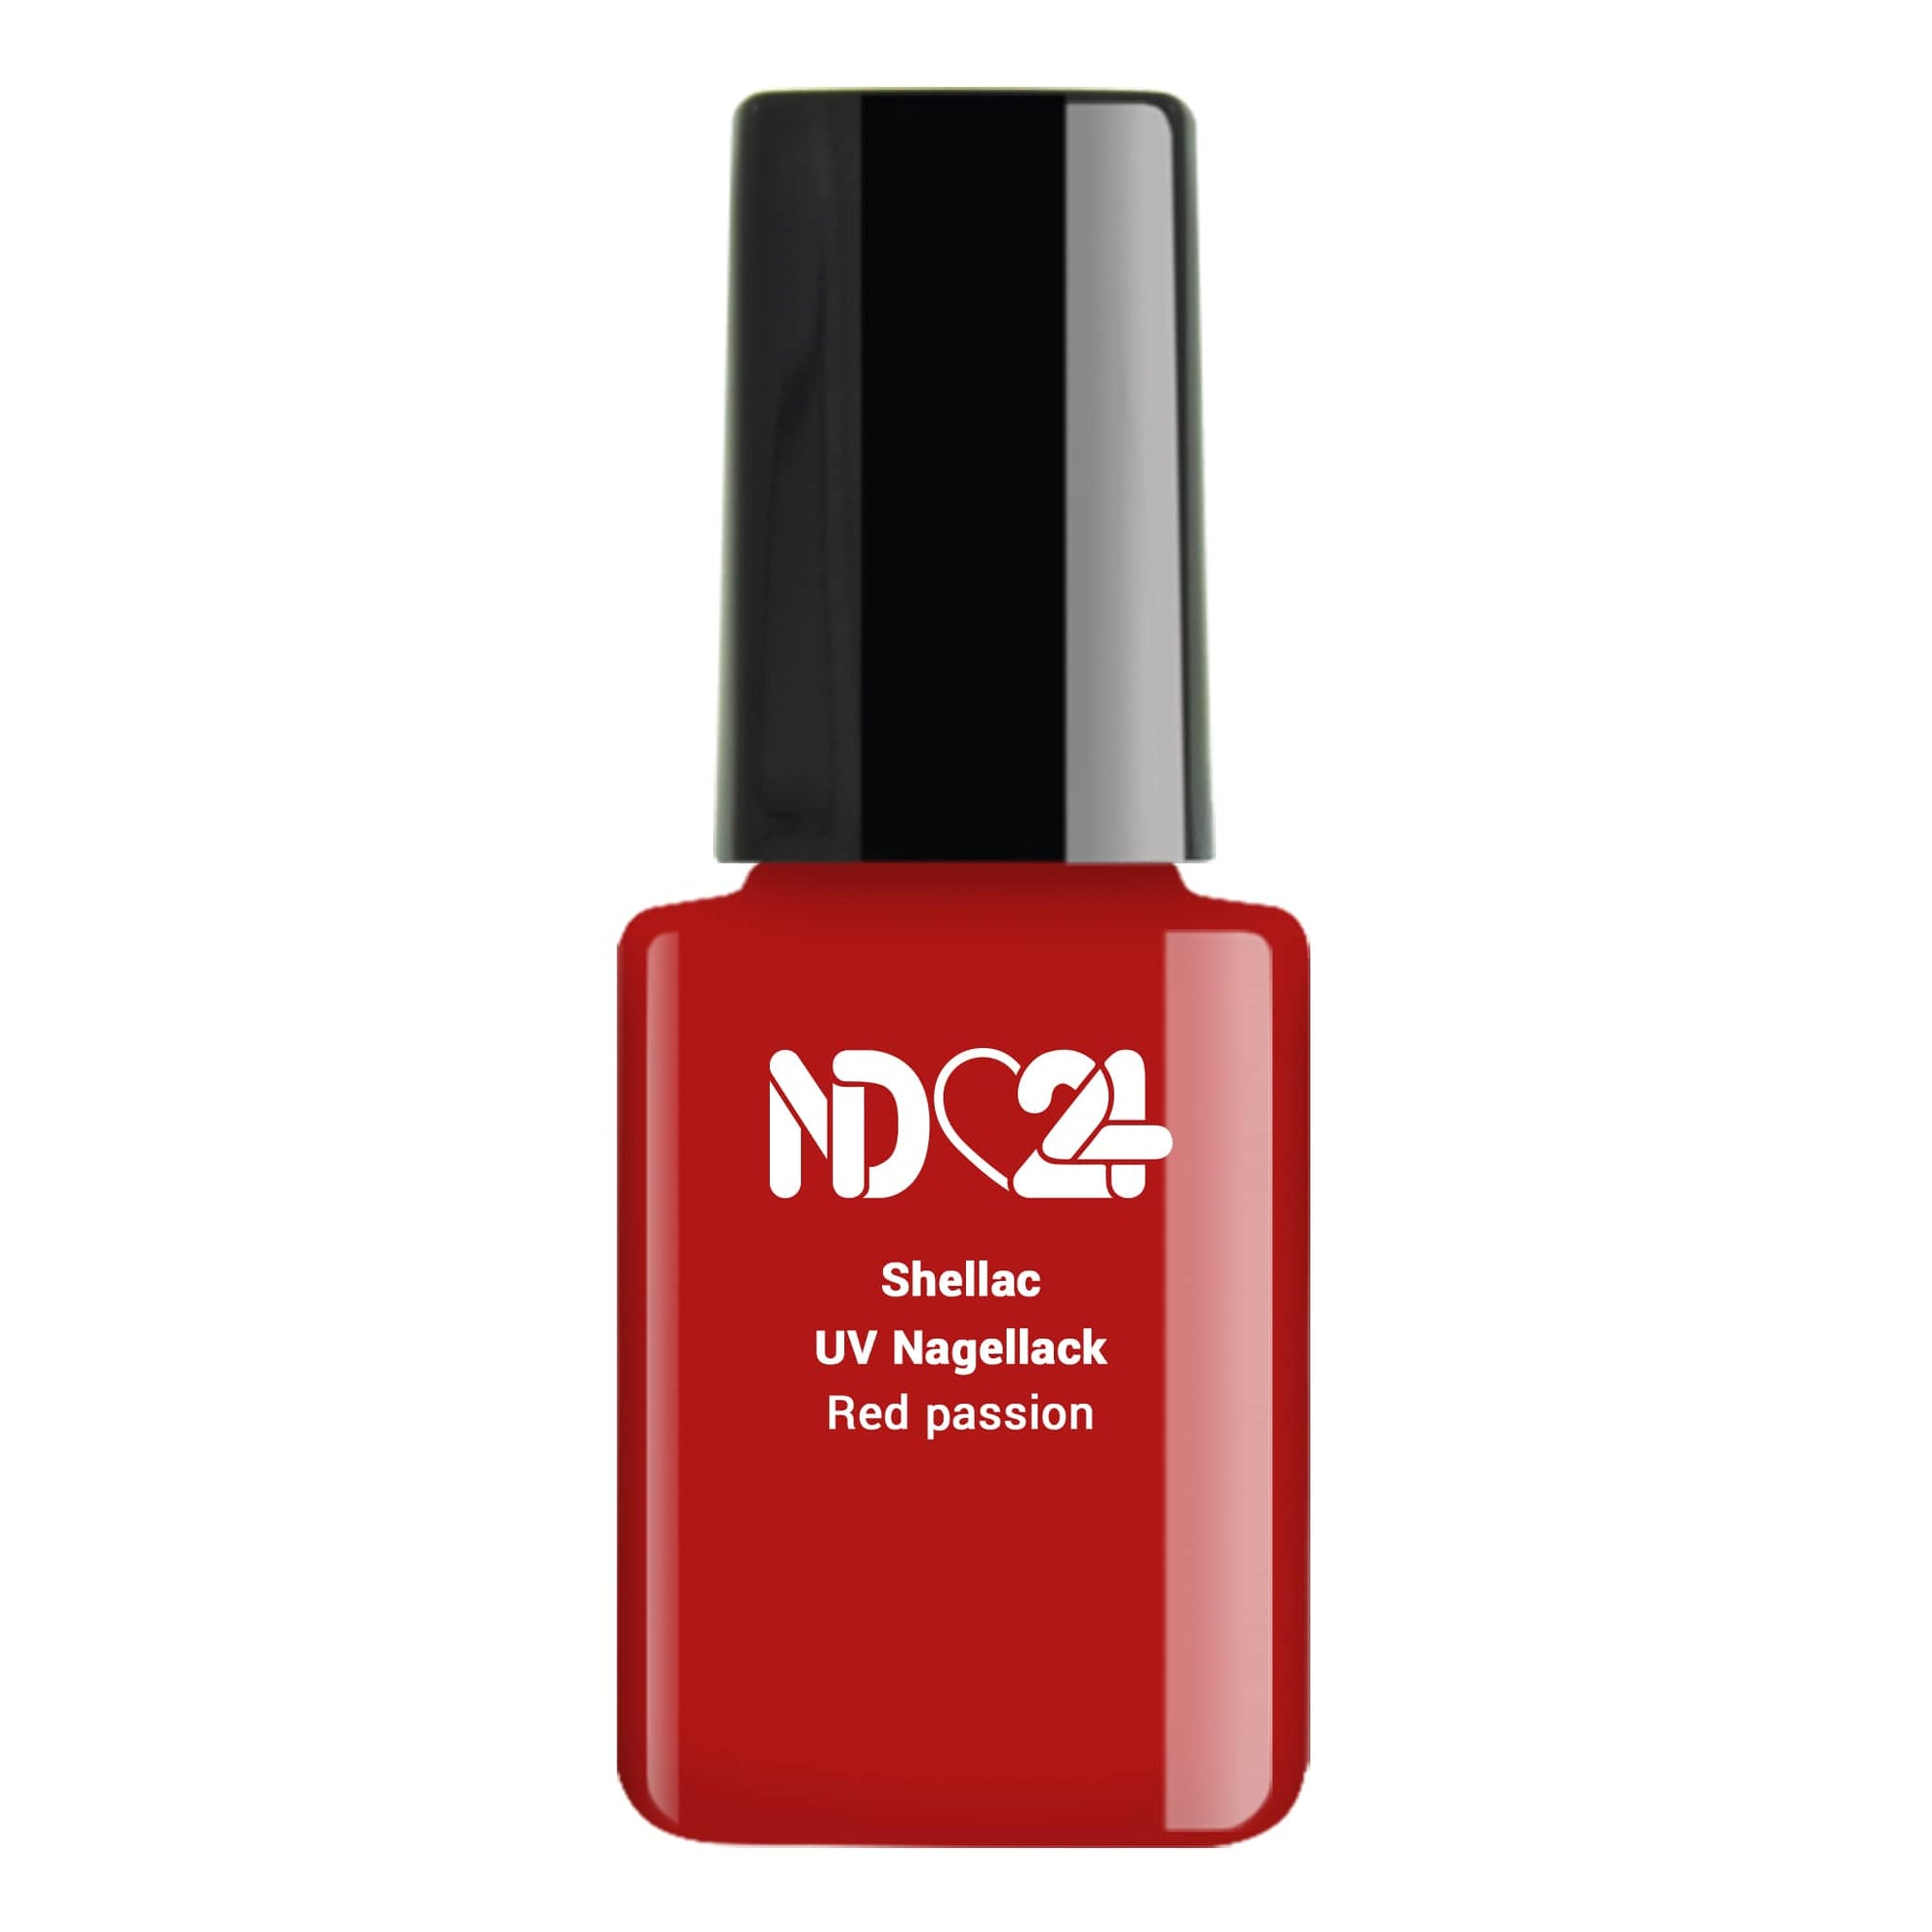 Shellac Red passion